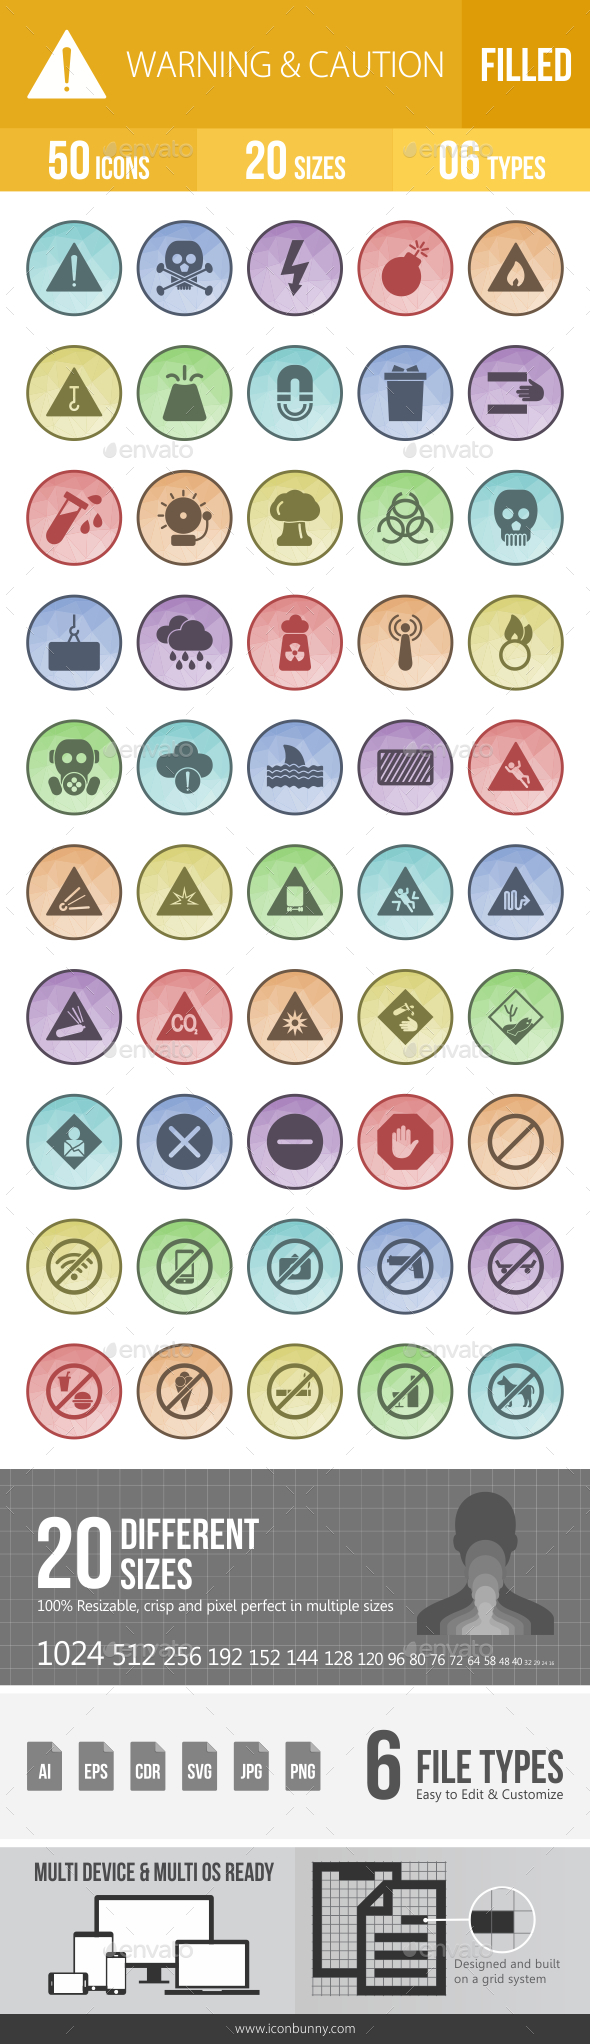 GraphicRiver 50 Warning & Caution Filled Low Poly Icons 21153139